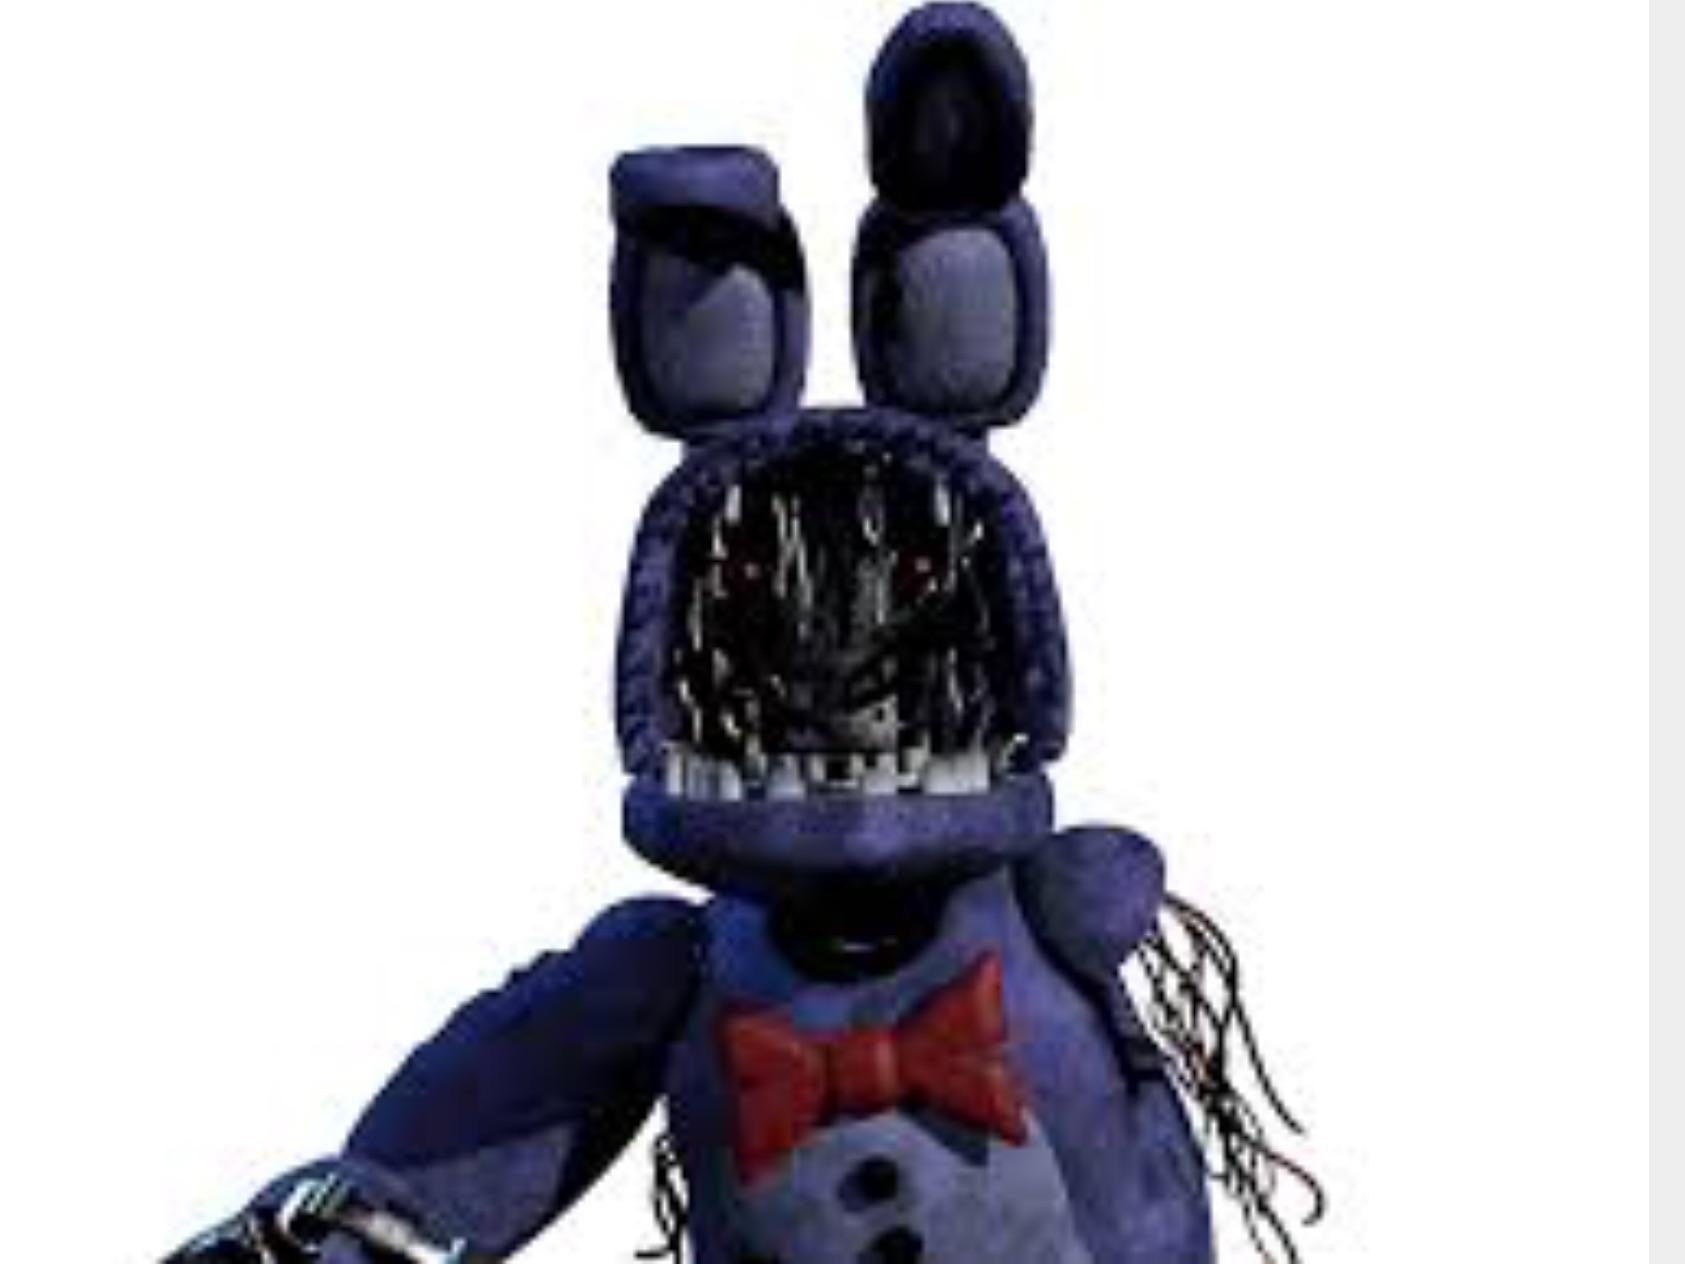 Withered/Old Bonnie